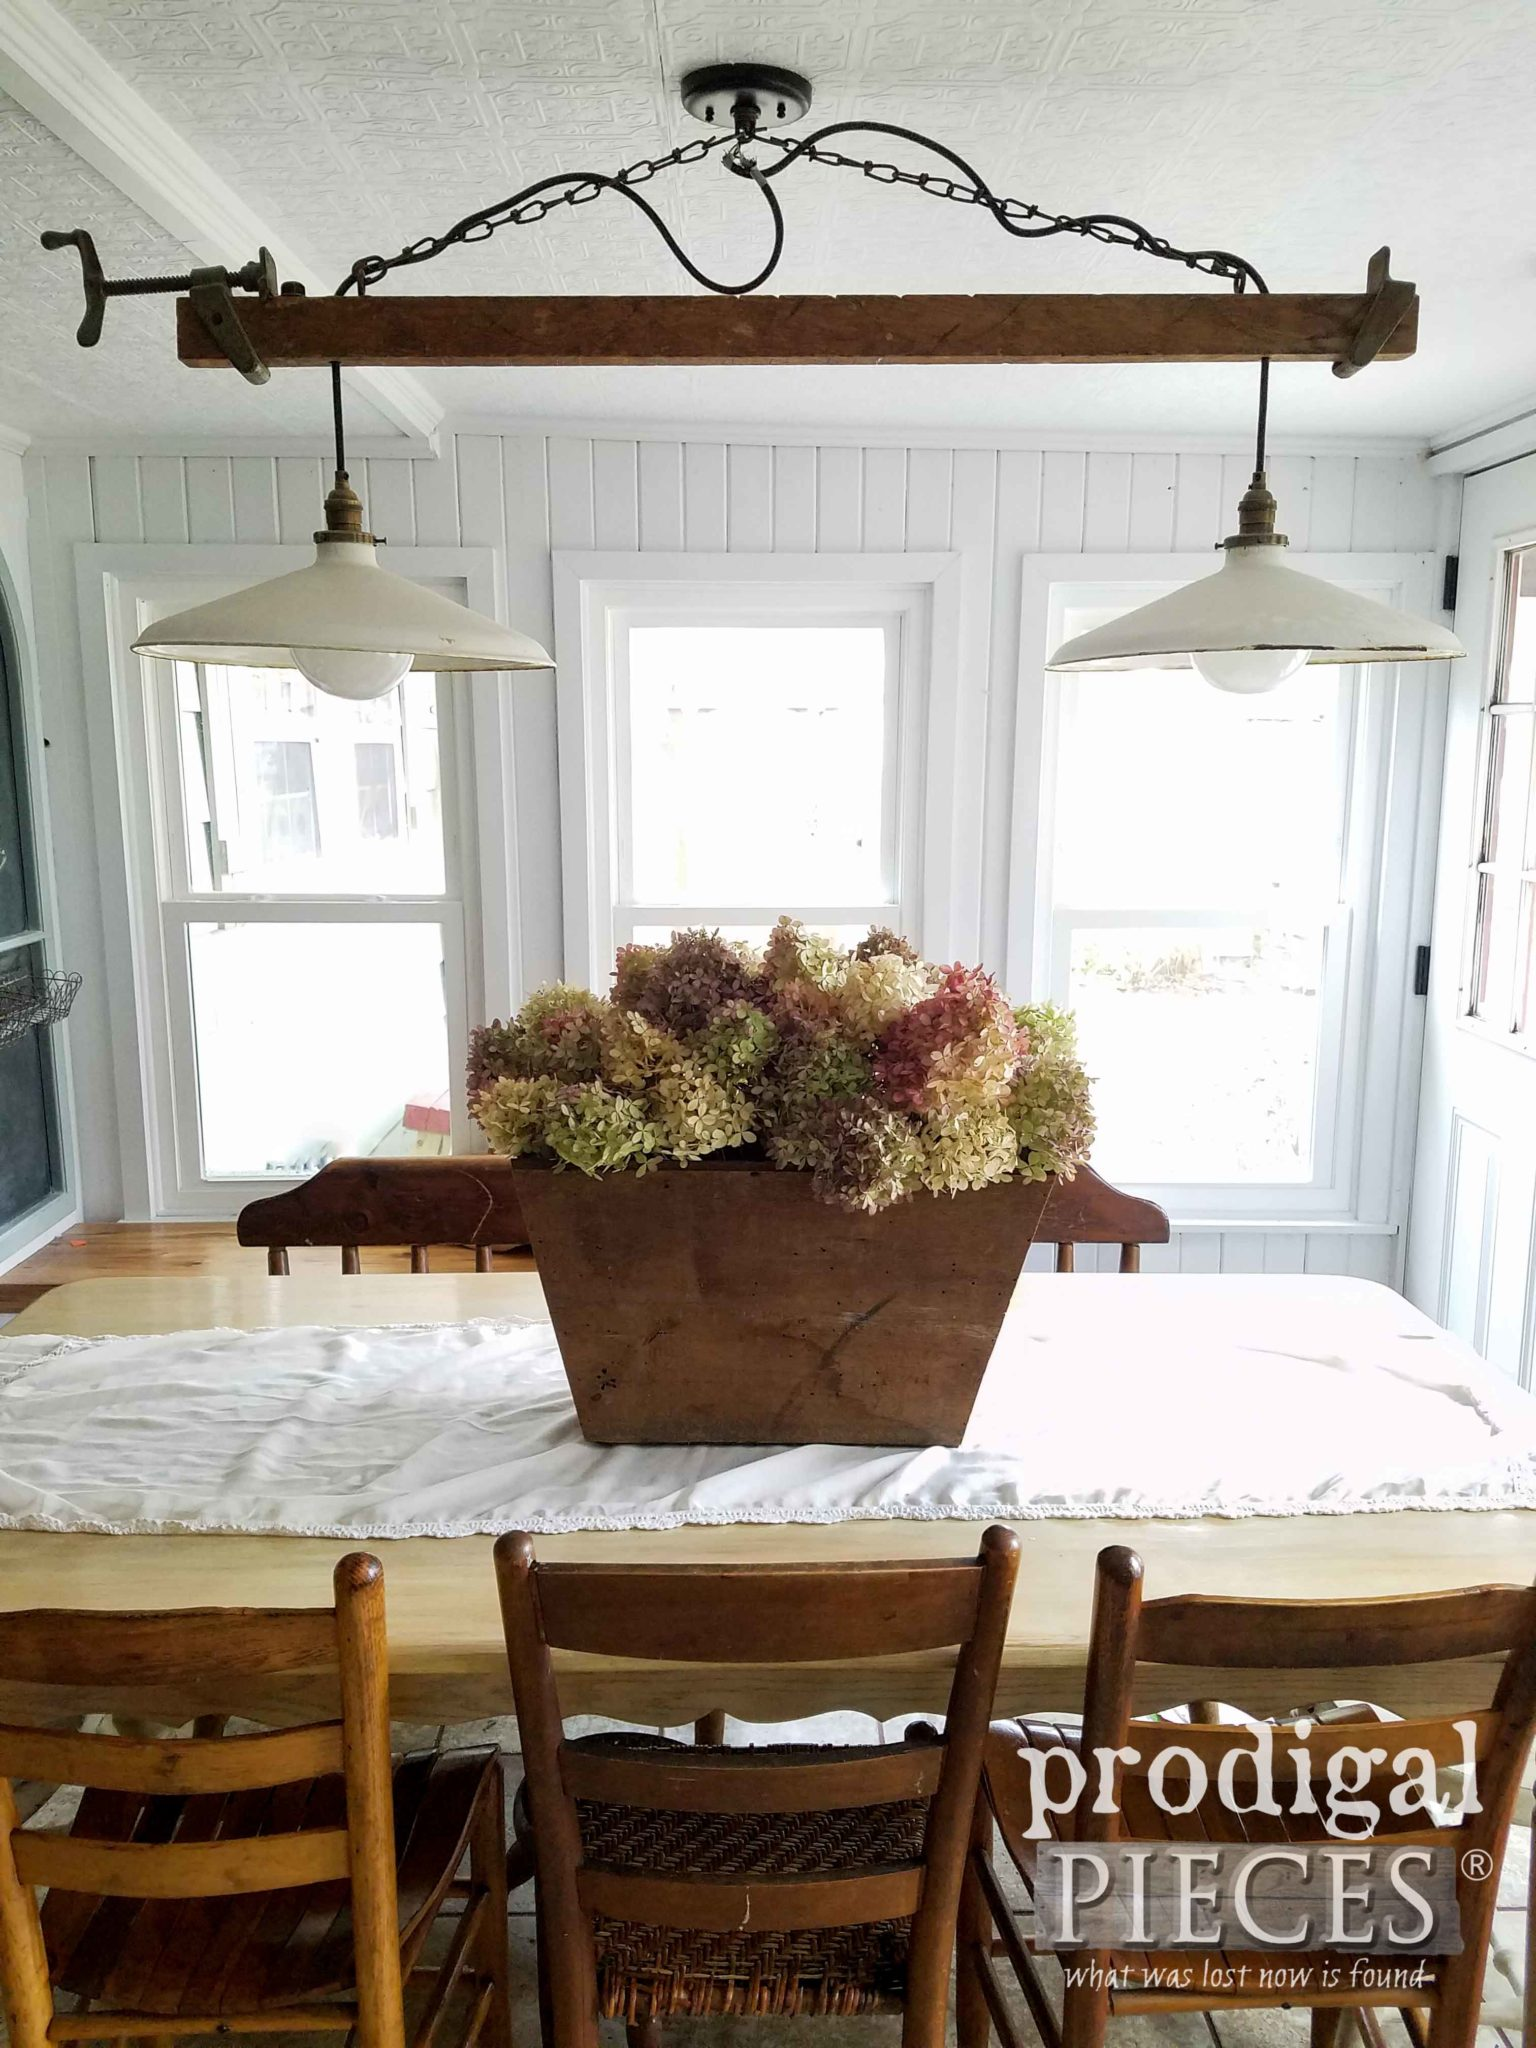 Farmhouse Table Centerpiece made of Reclaimed Wood and filled with Hydrangea. By Larissa of Prodigal Pieces | prodigalpieces.com